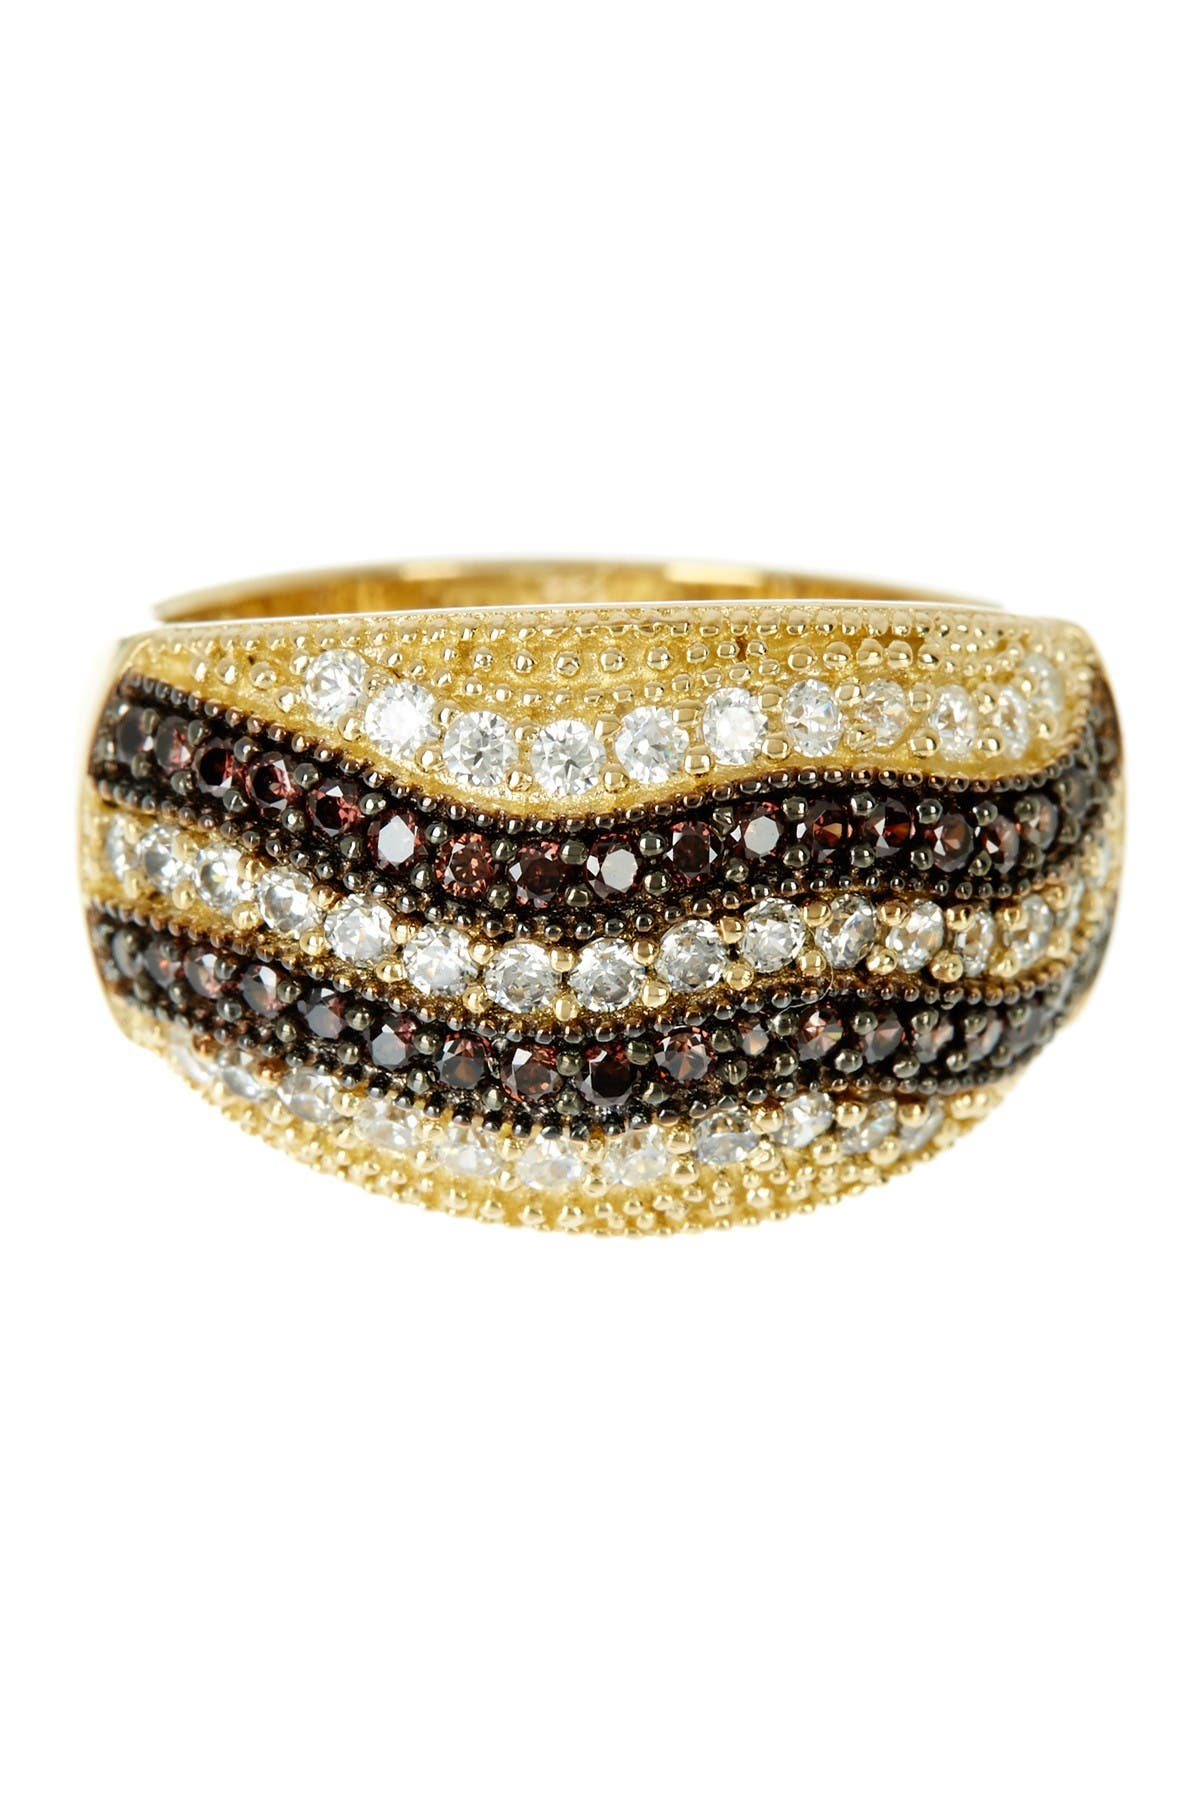 Image of Suzy Levian 14K Gold Plated Sterling Silver Striped Chocolate CZ Ring